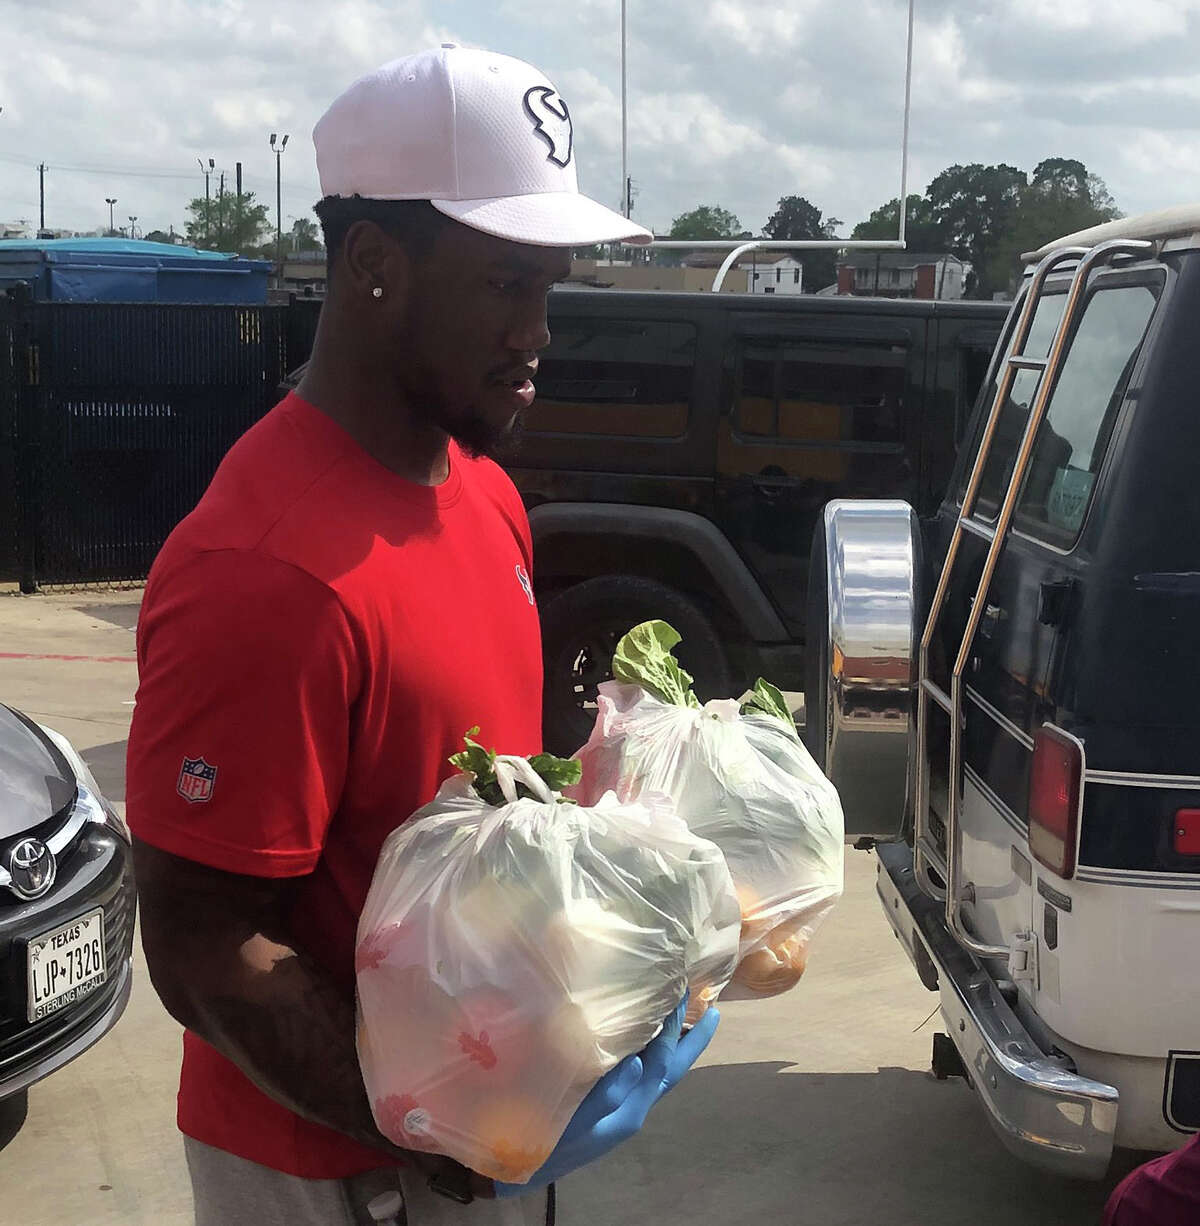 Texans outside linebacker Jacob Martin pitched in at Yates High School in the Third Ward to assist families in need during the coronavirus pandemic.